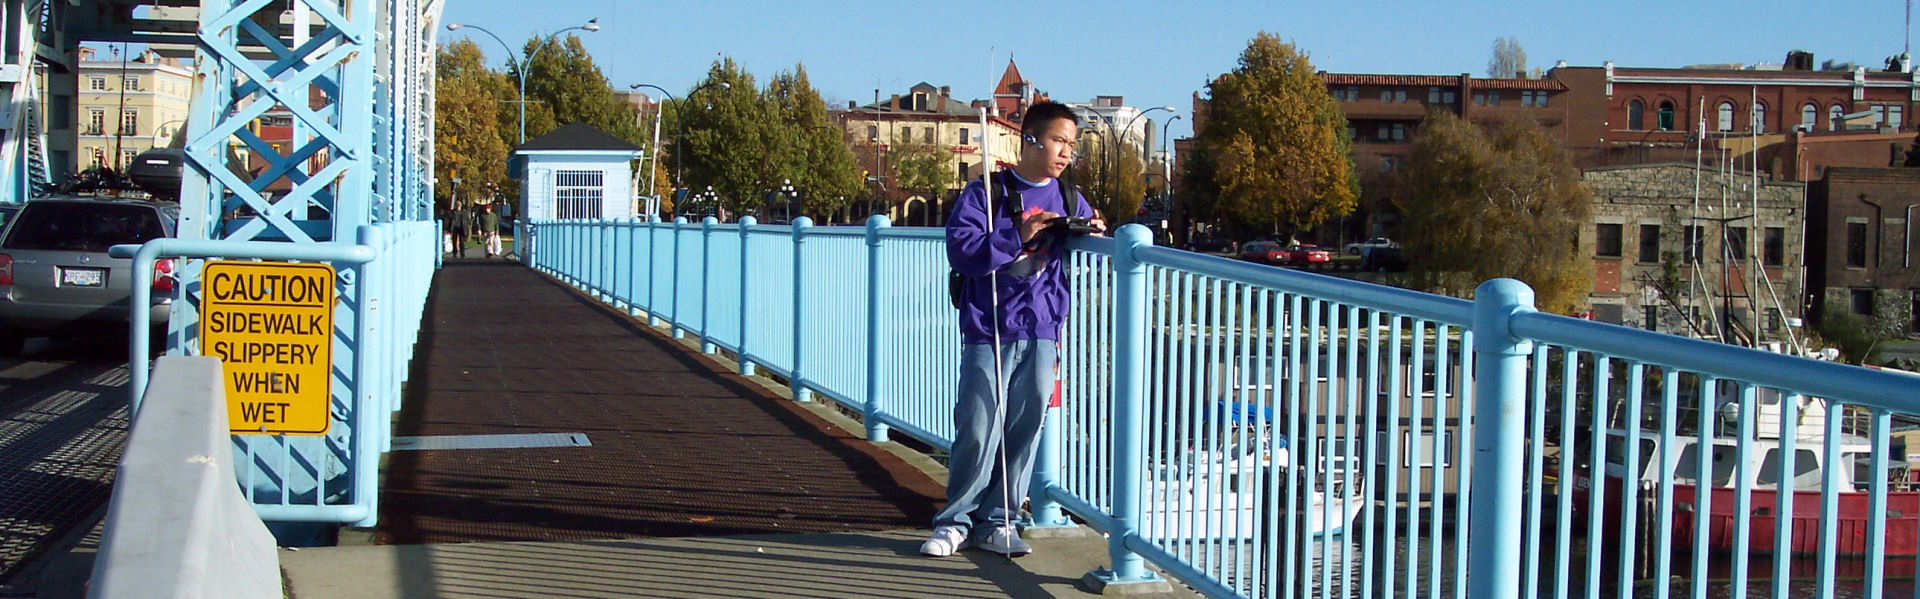 GPS User exploring a new city with Accessible GPS